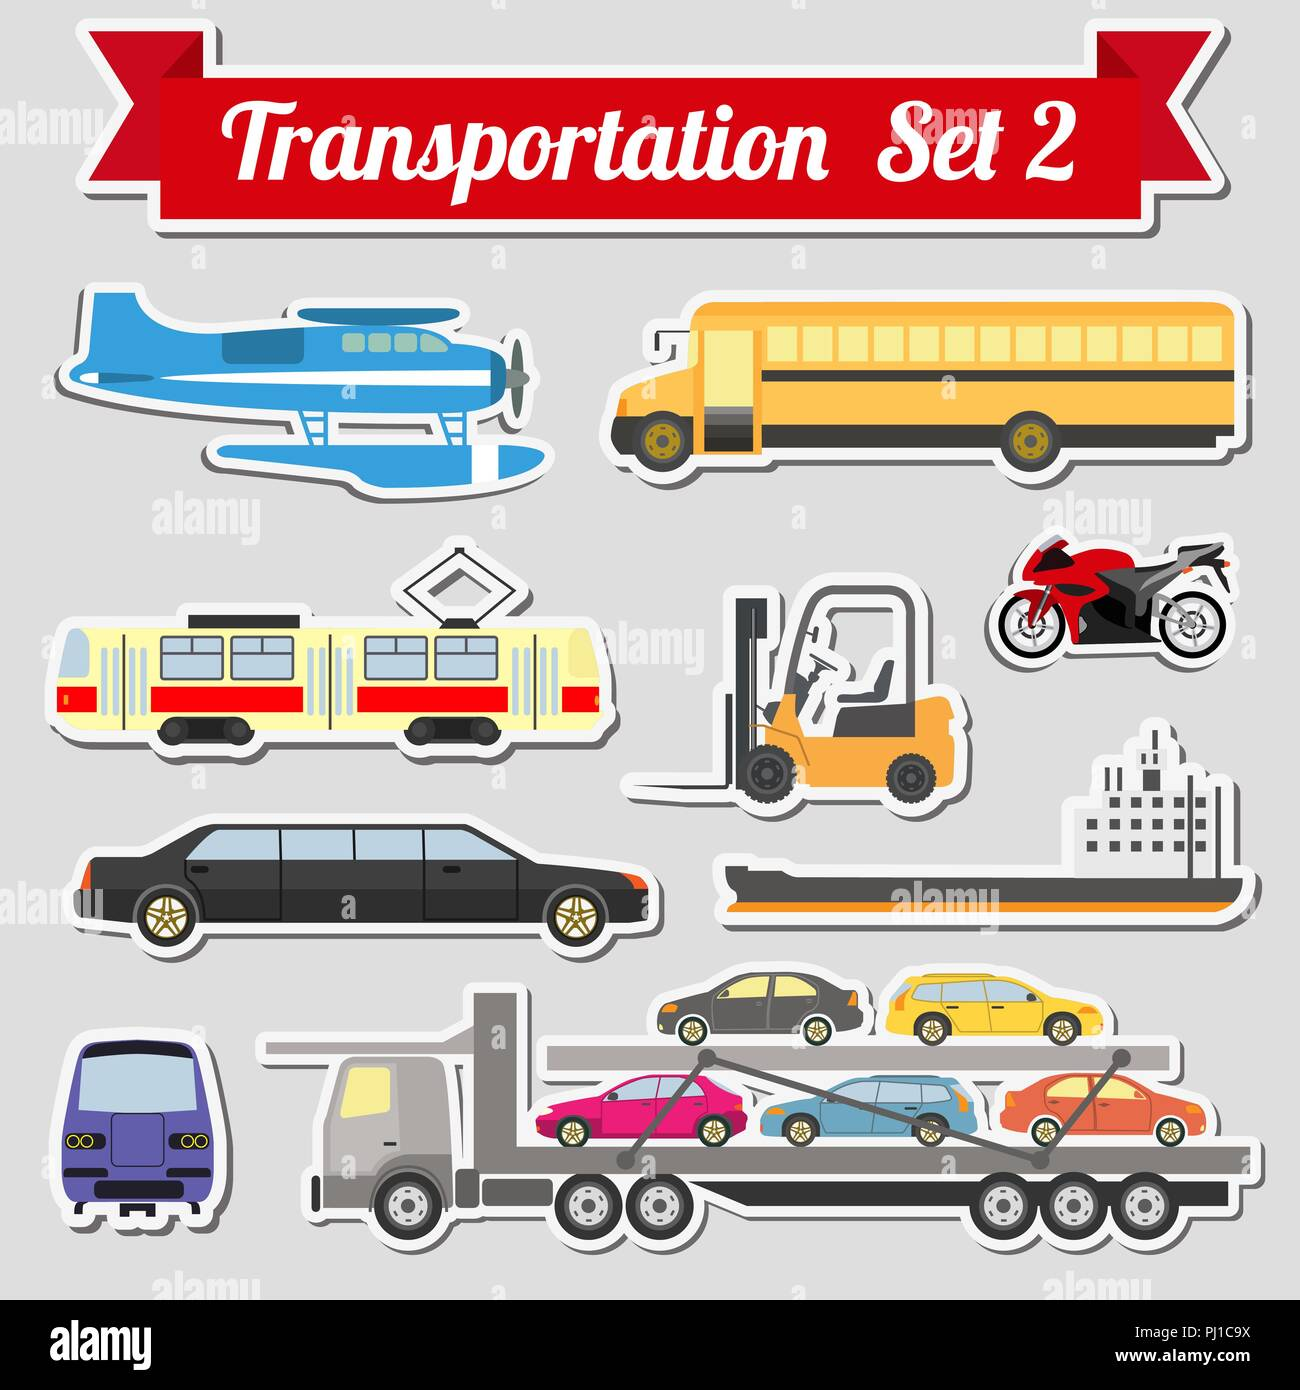 Set of all types of transport icon for creating your own